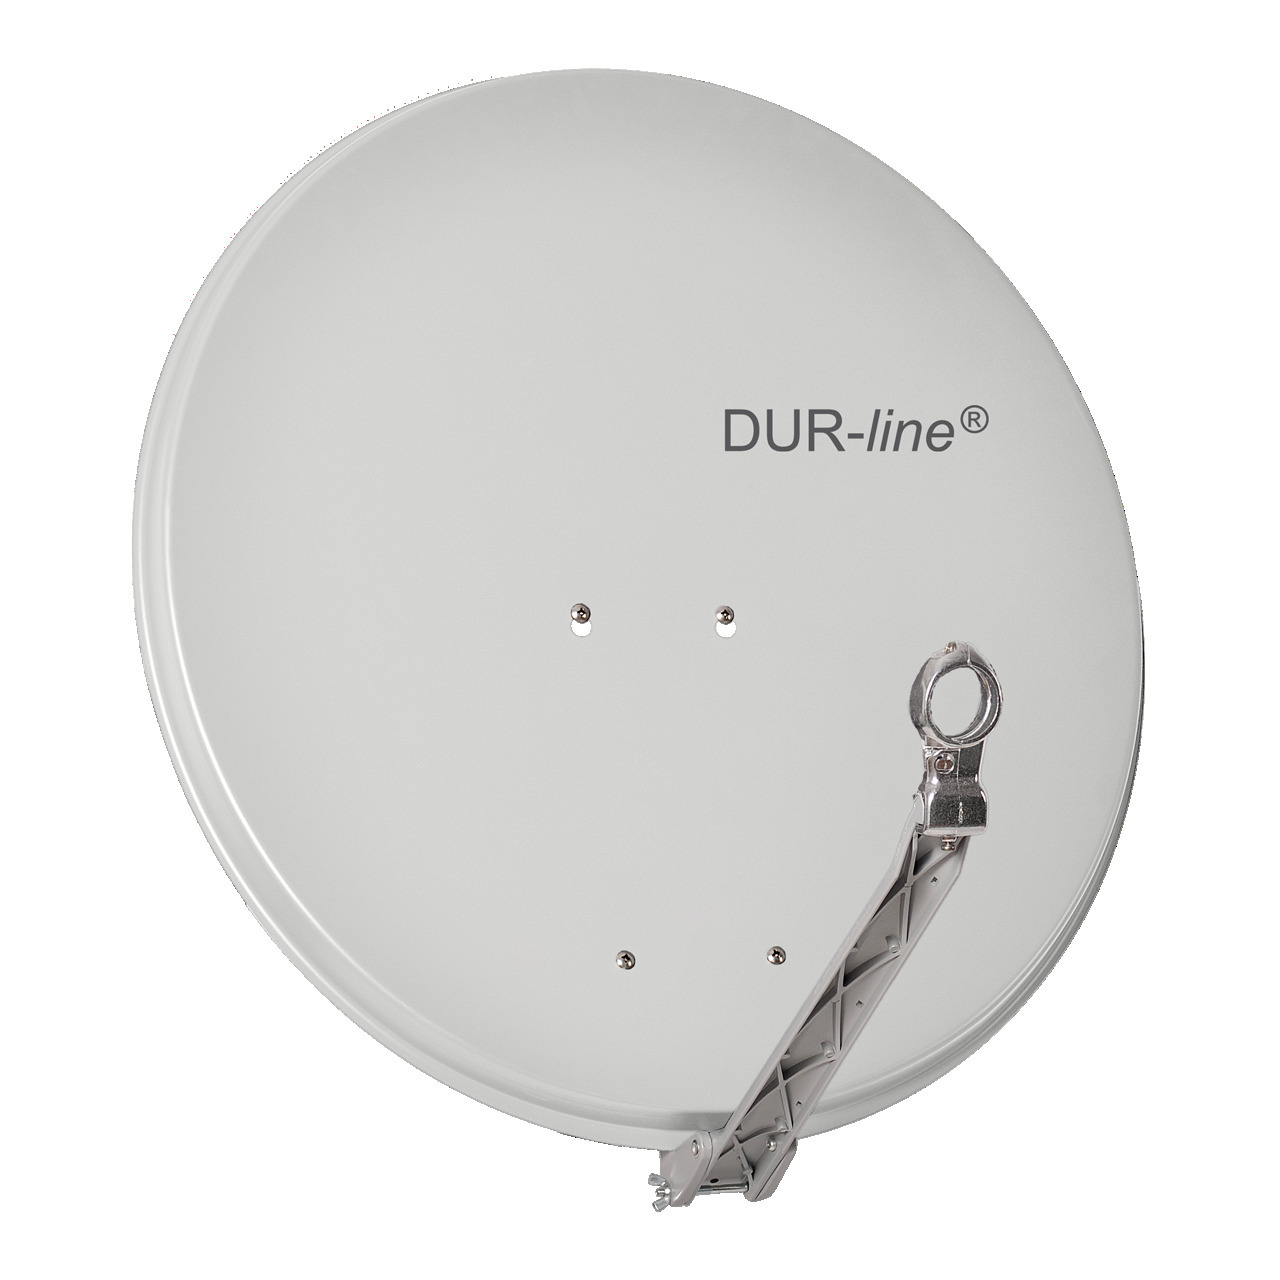 DUR-line Vollaluminium-Satellitenspiegel Select 75-80- pulverbeschichtet- extrem robust- hellgrau